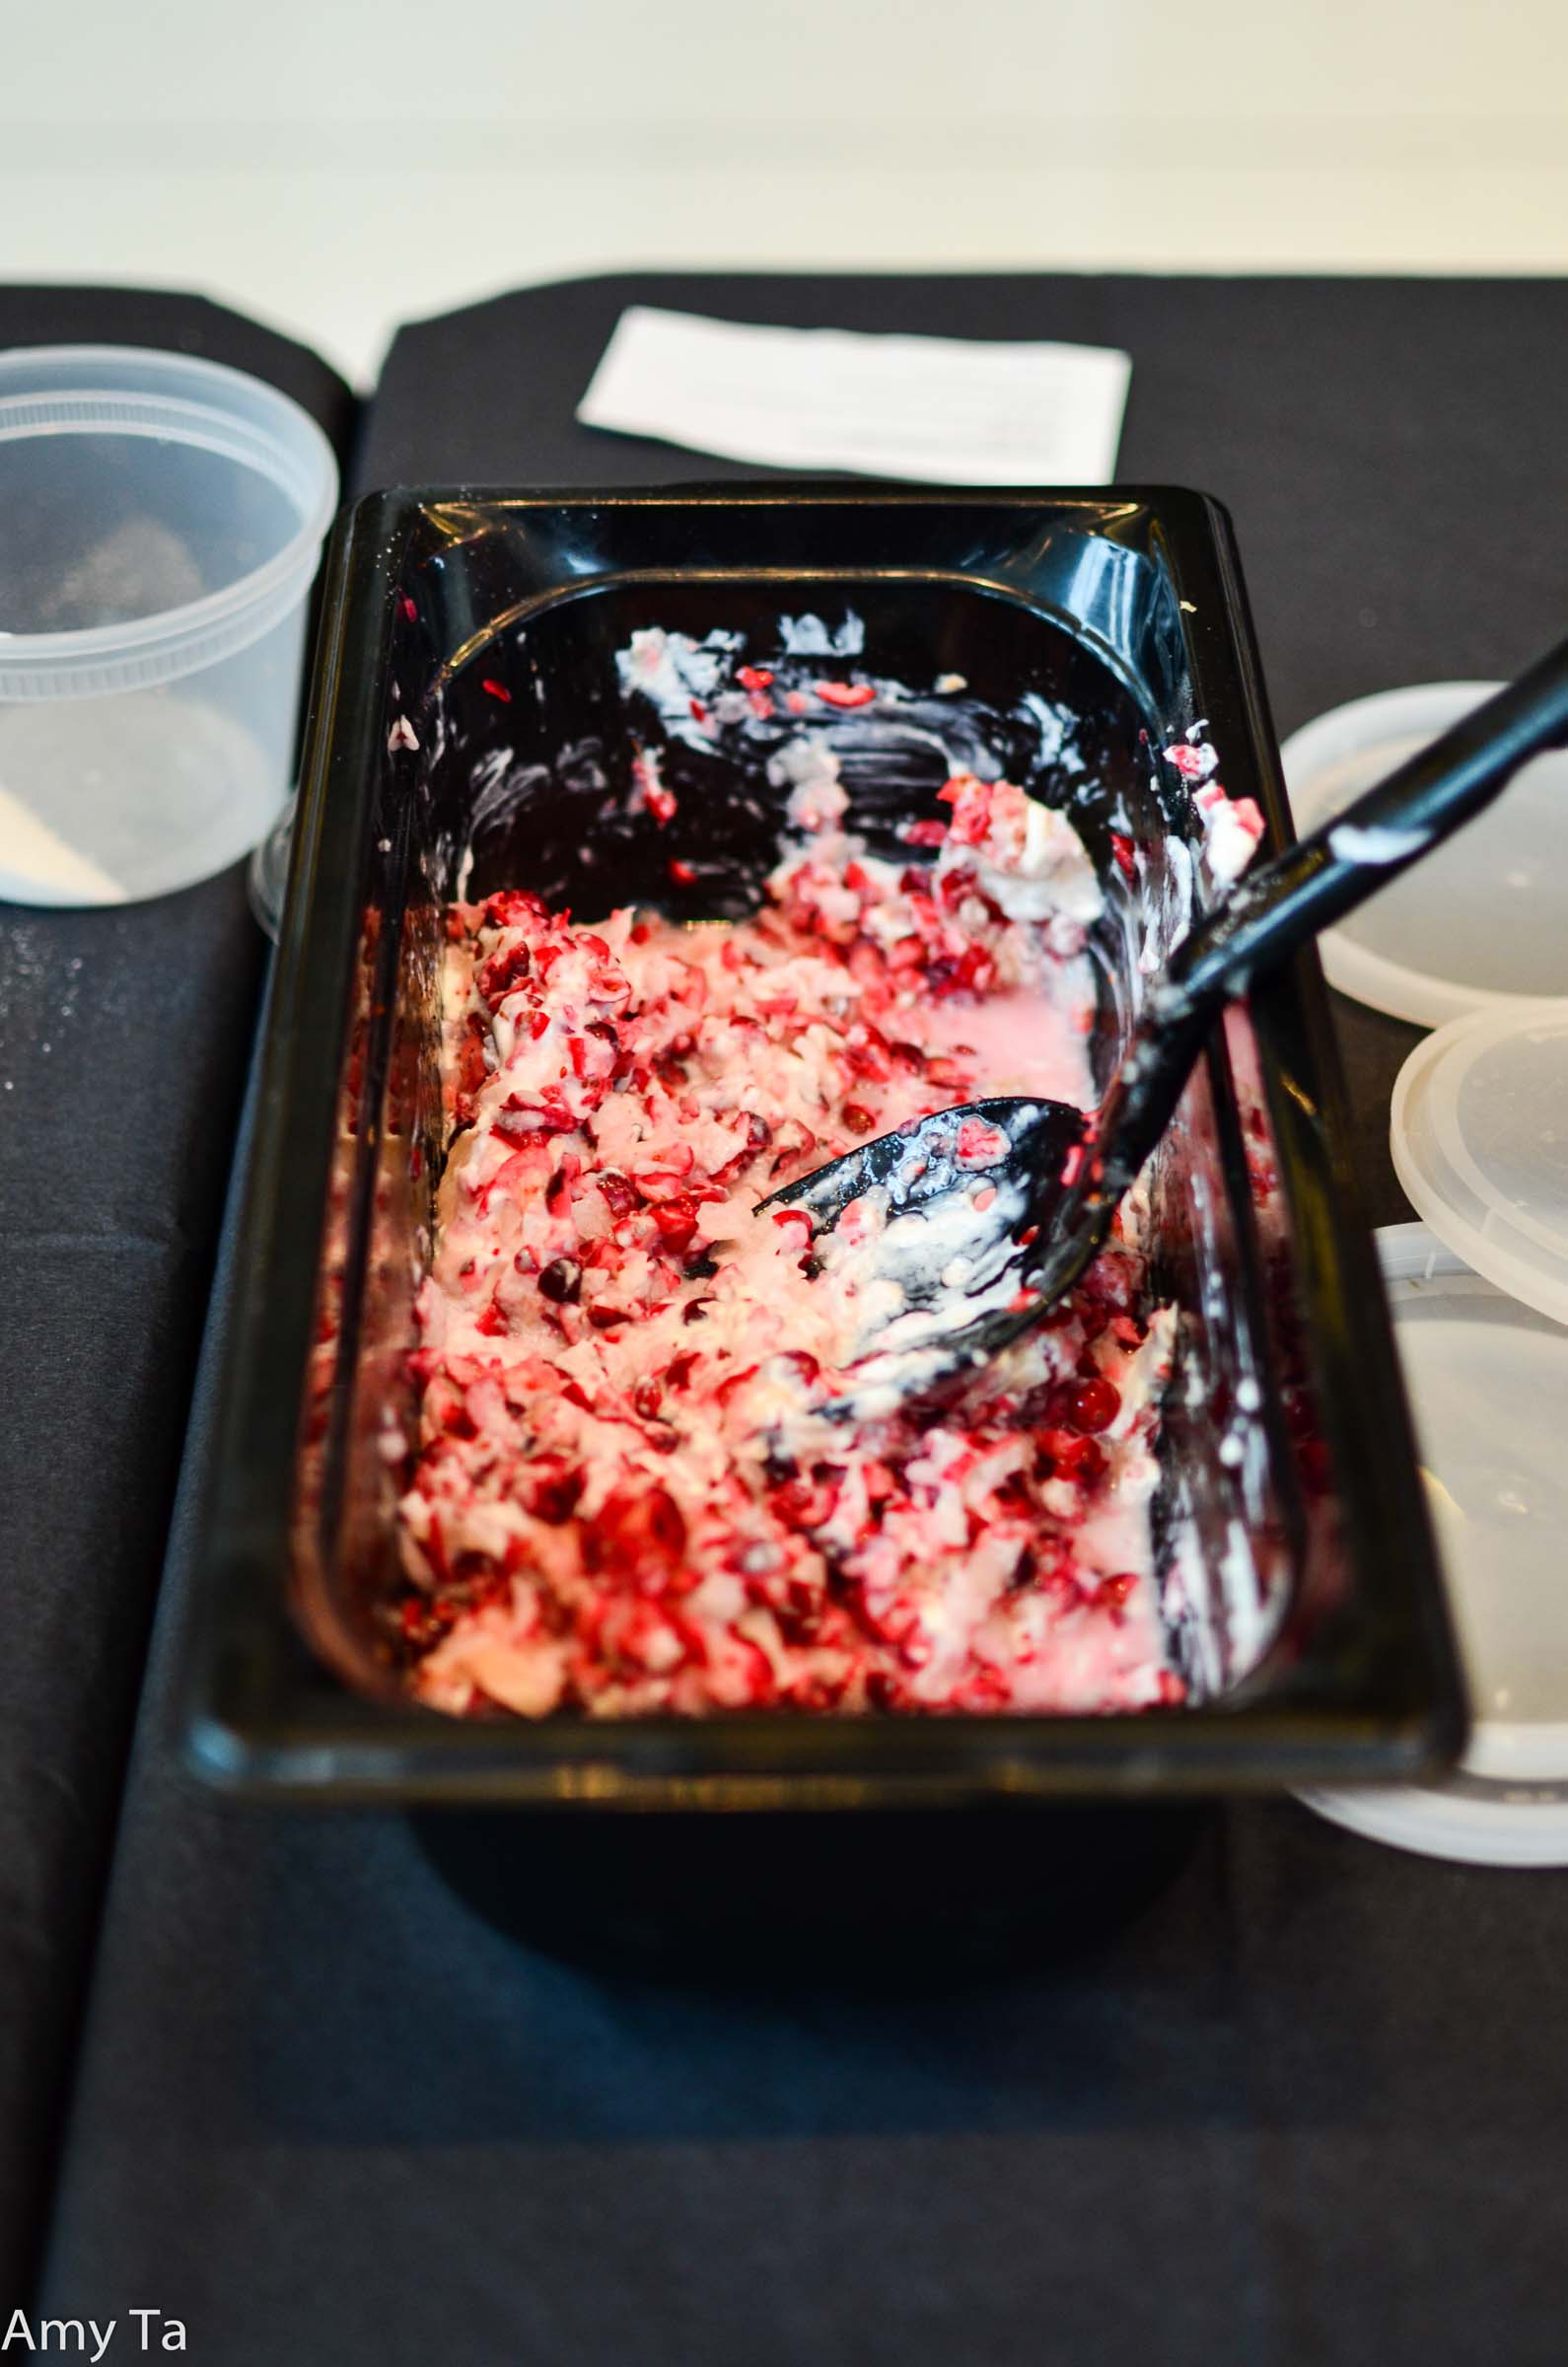 If you guessed Mama Stamberg's Cranberry Relish, then you are correct! We just hope Susan Stamberg doesn't disown us for using her recipe in this way. Oh, and did we mention they had to take a bite?!